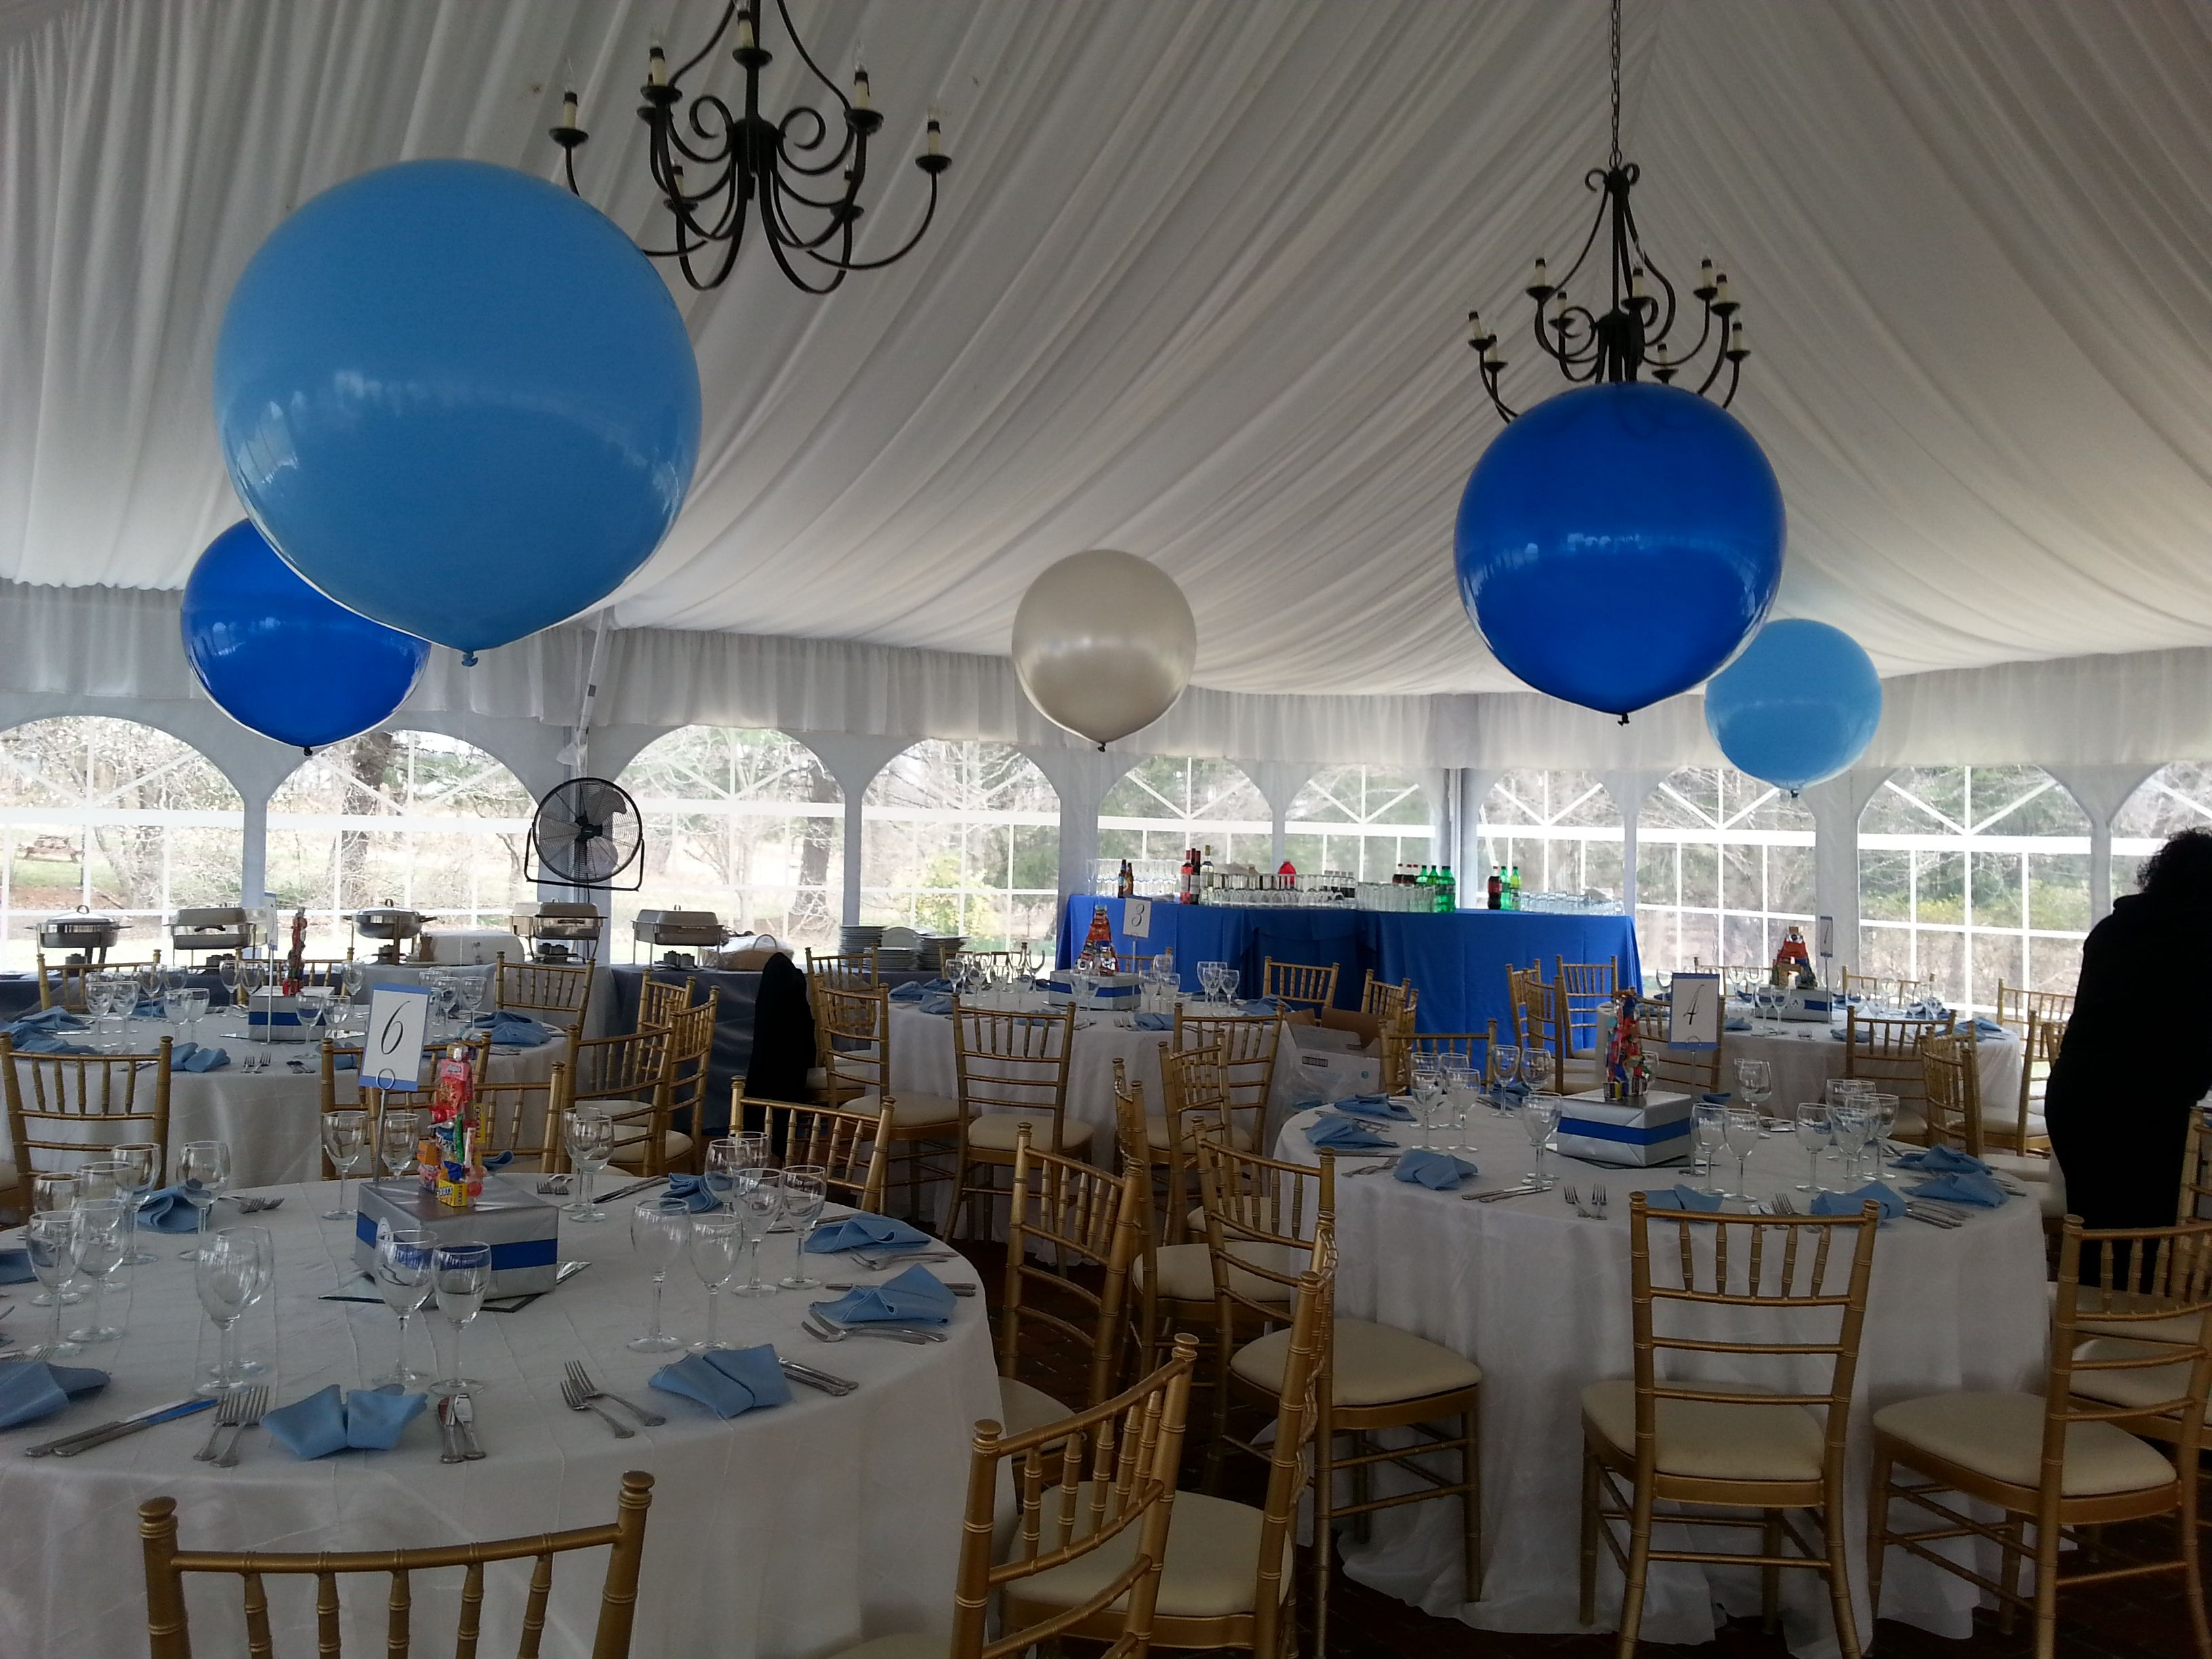 3 Balloon Centerpieces Light Blue Blue And Silver Balloons Balloon Centerpieces Big Balloons Balloon Decorations